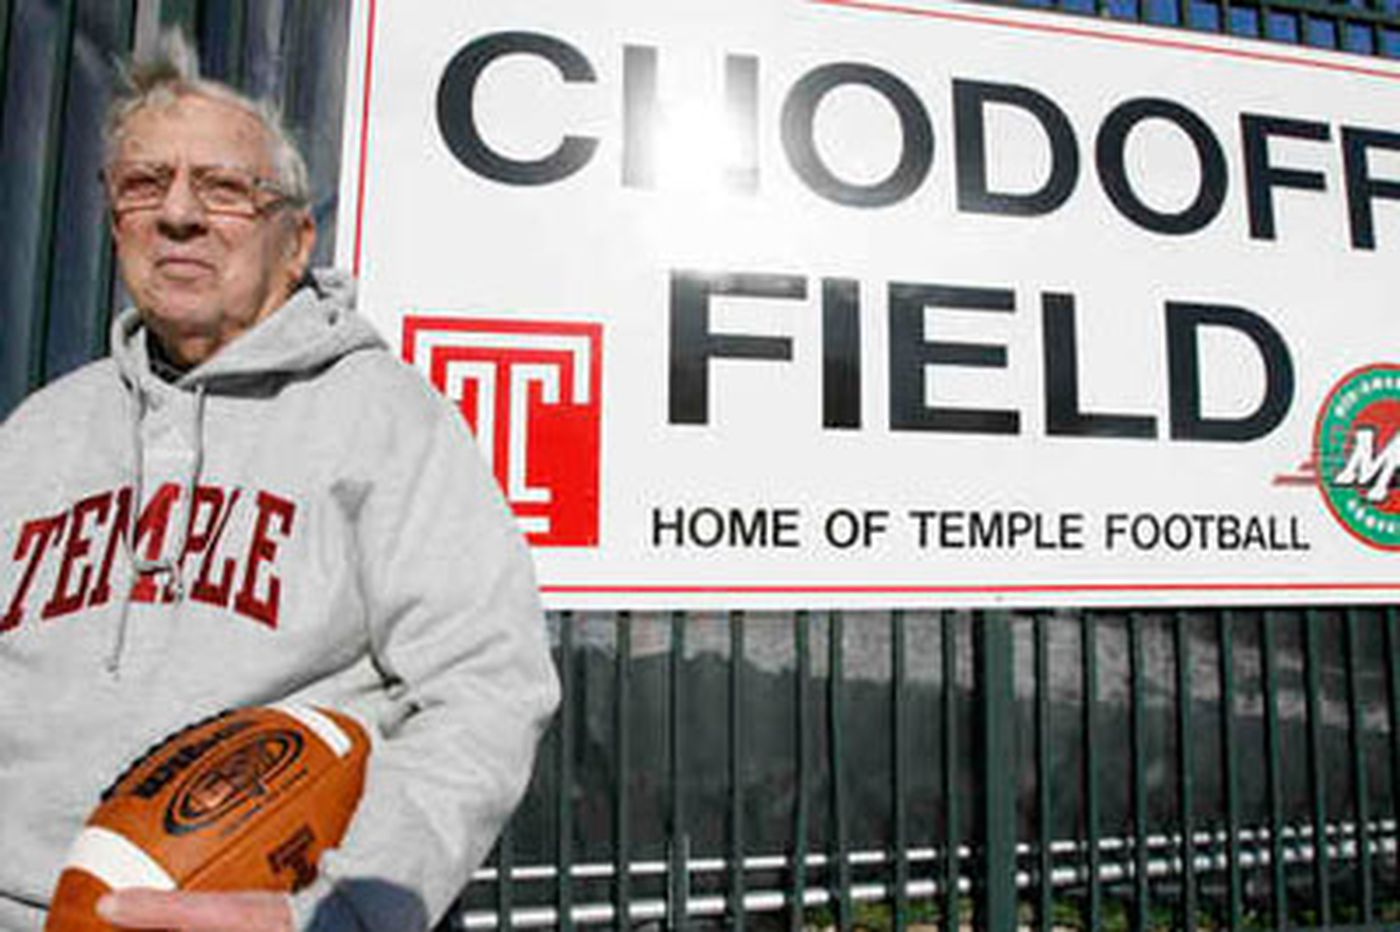 After 30-year wait, Temple booster gets with with today's bowl game